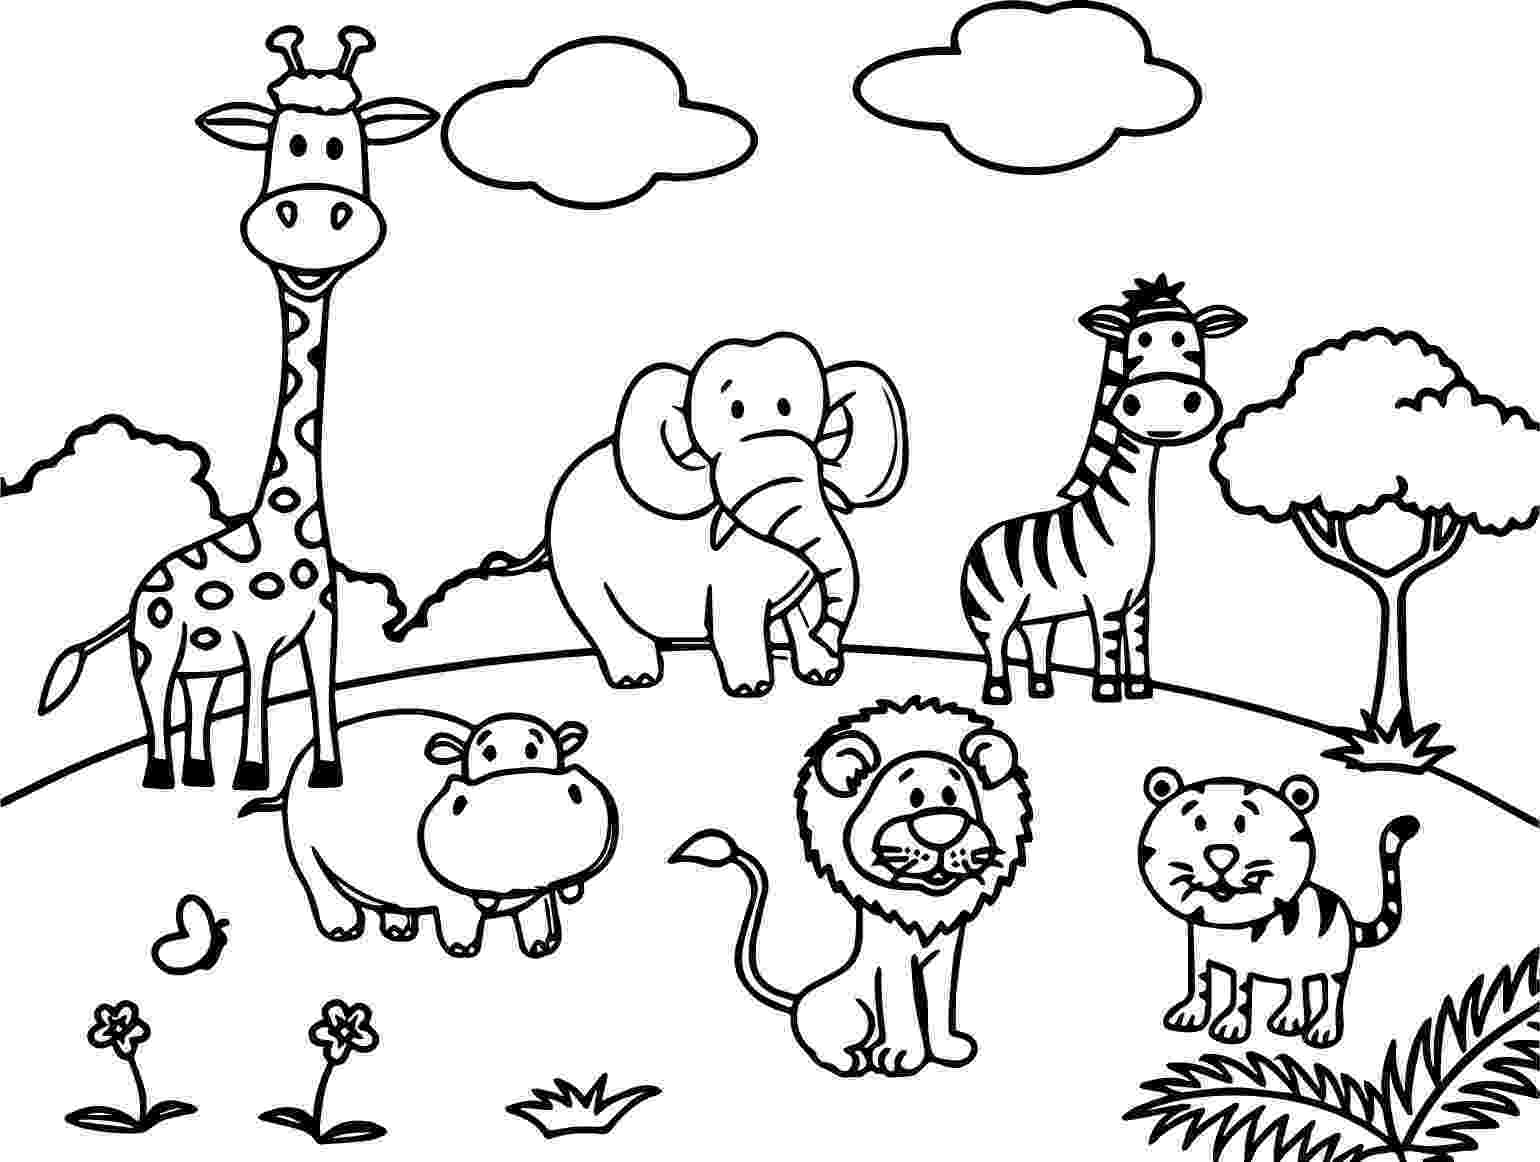 free colouring pages wild animals free realistic animal coloring pages realistic animal colouring wild animals pages free